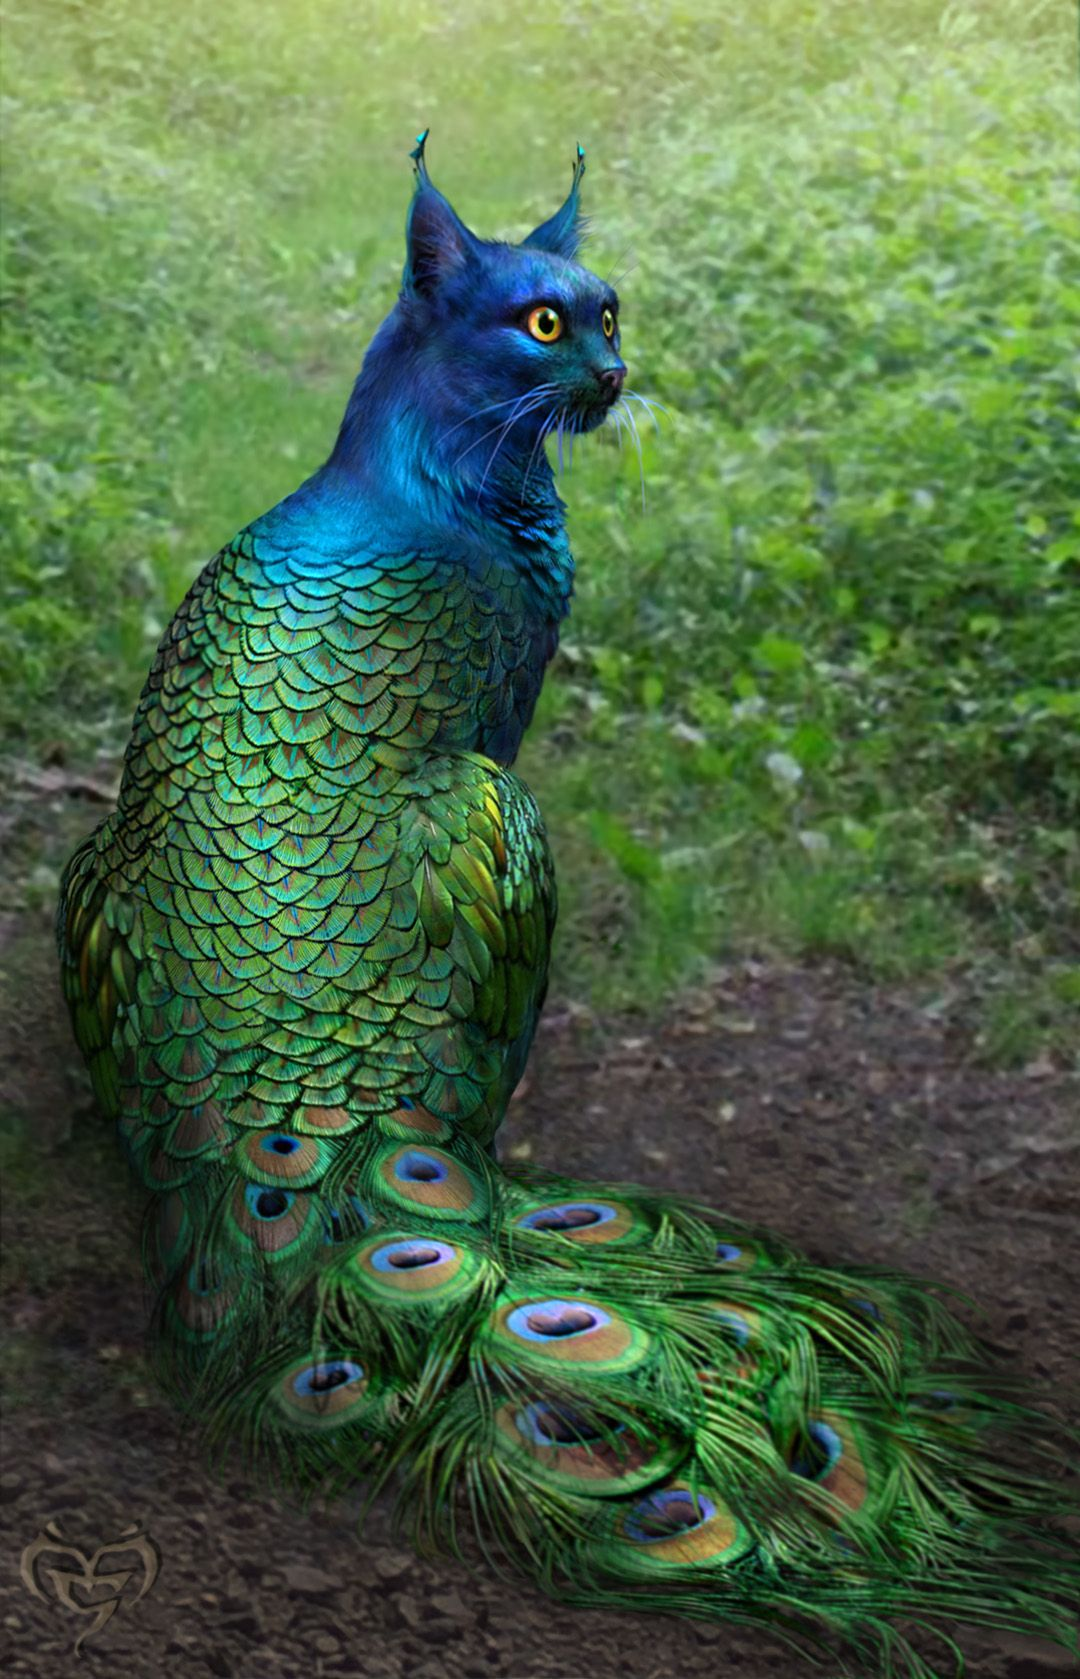 YASSSSS!!! Hybrid peacock cat! or peacock fish, for Milla